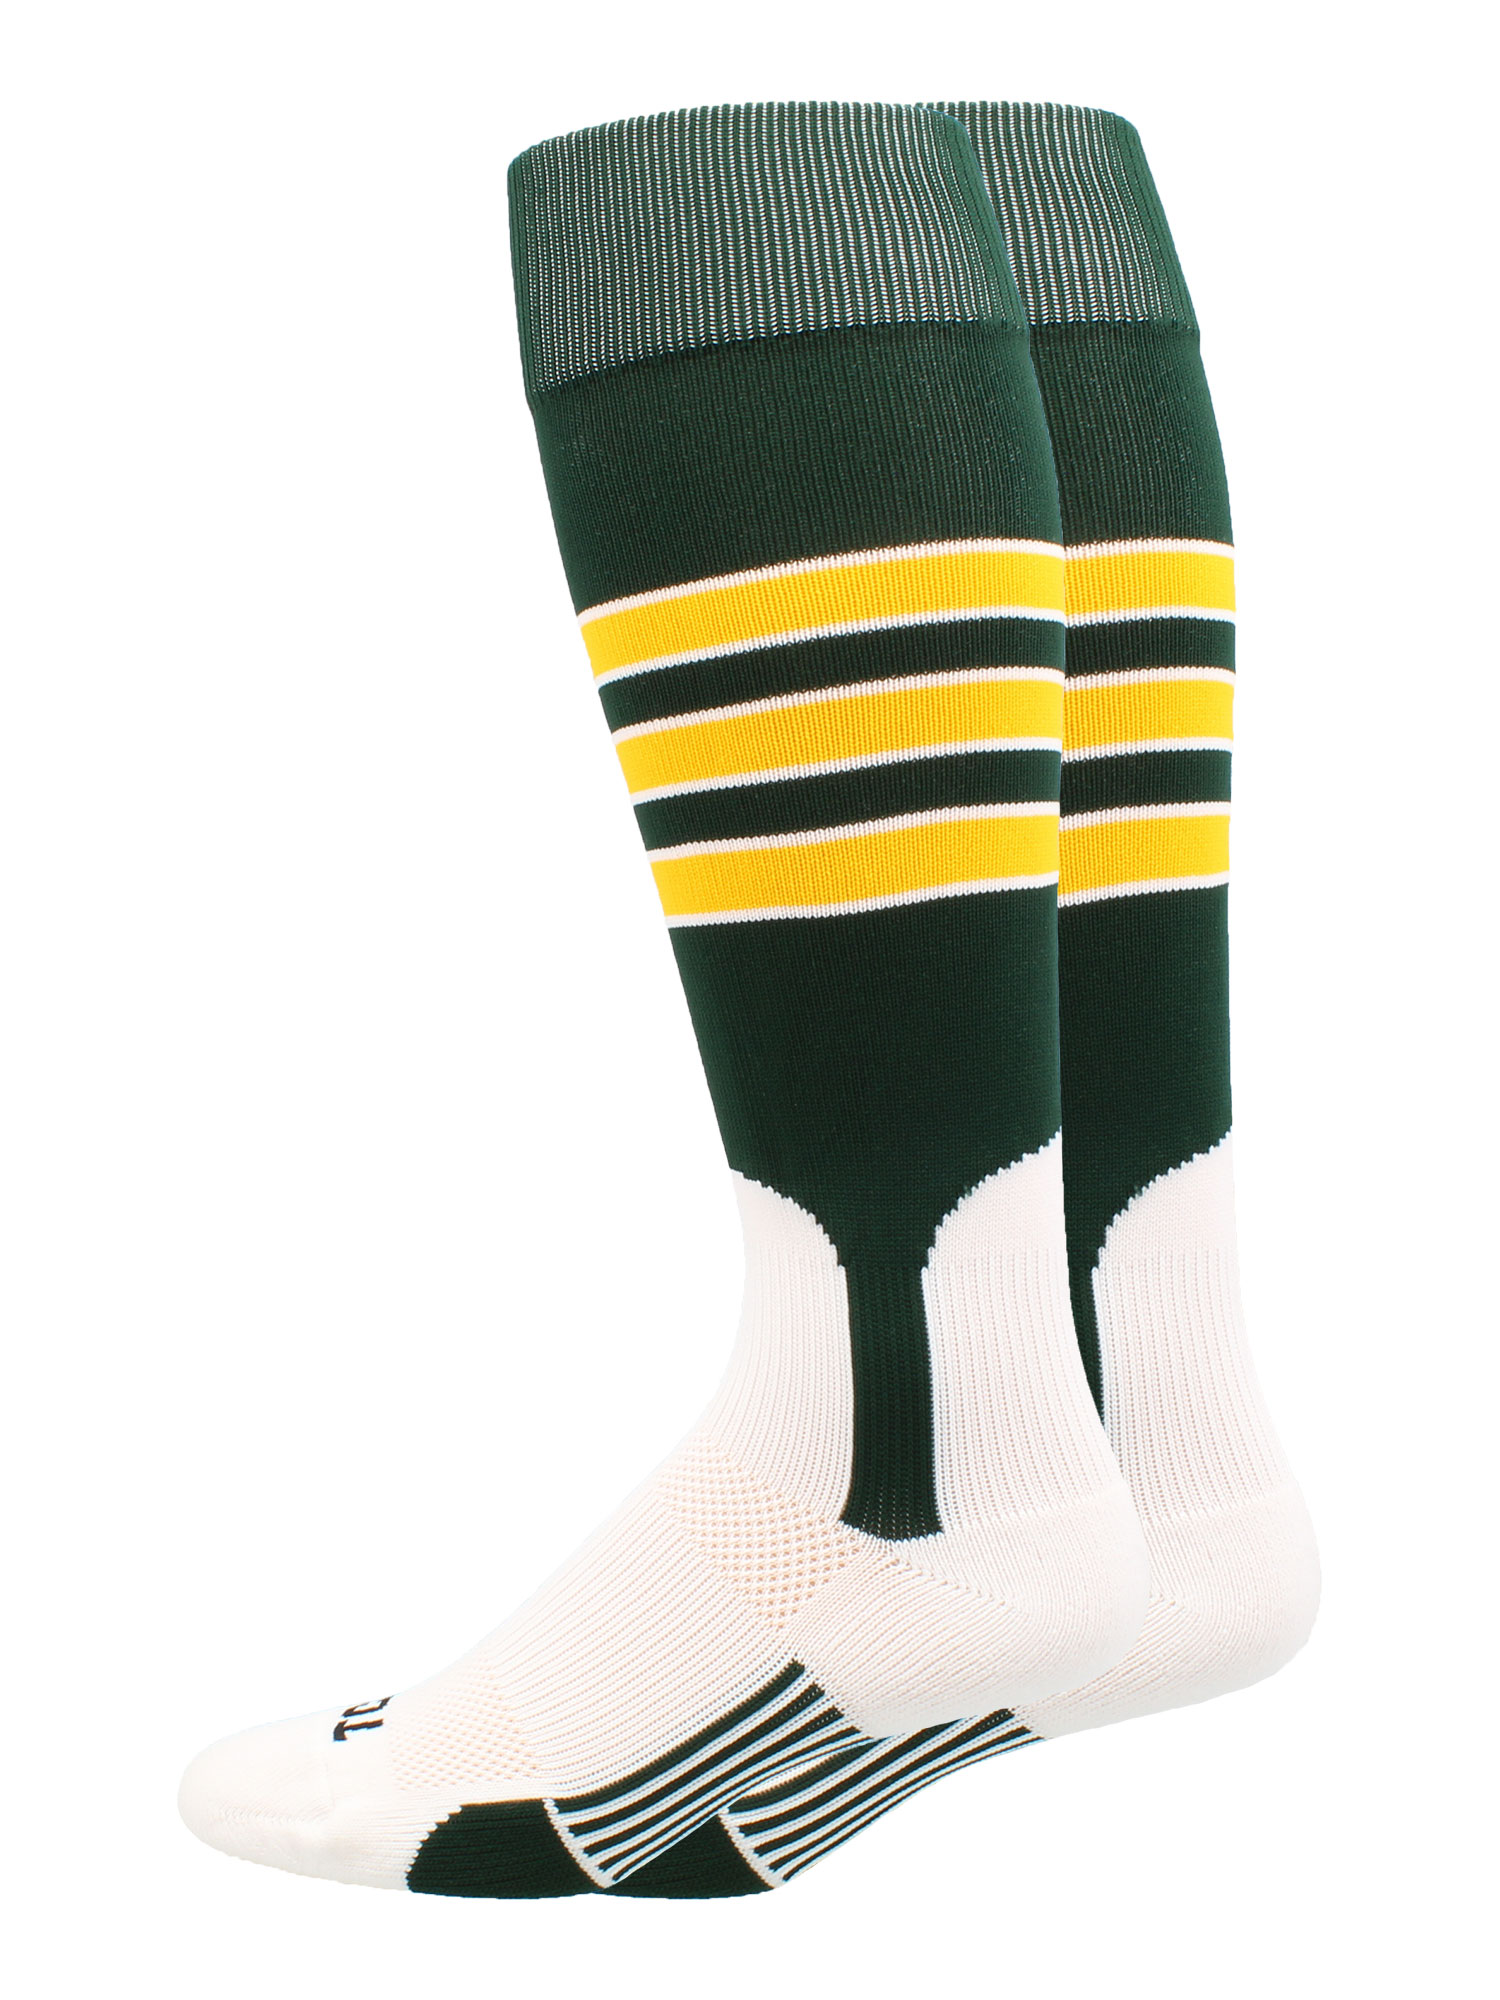 Baseball Stirrup Socks 3 Stripe (Royal/Orange/White, Large) - Royal/Orange/White,Large